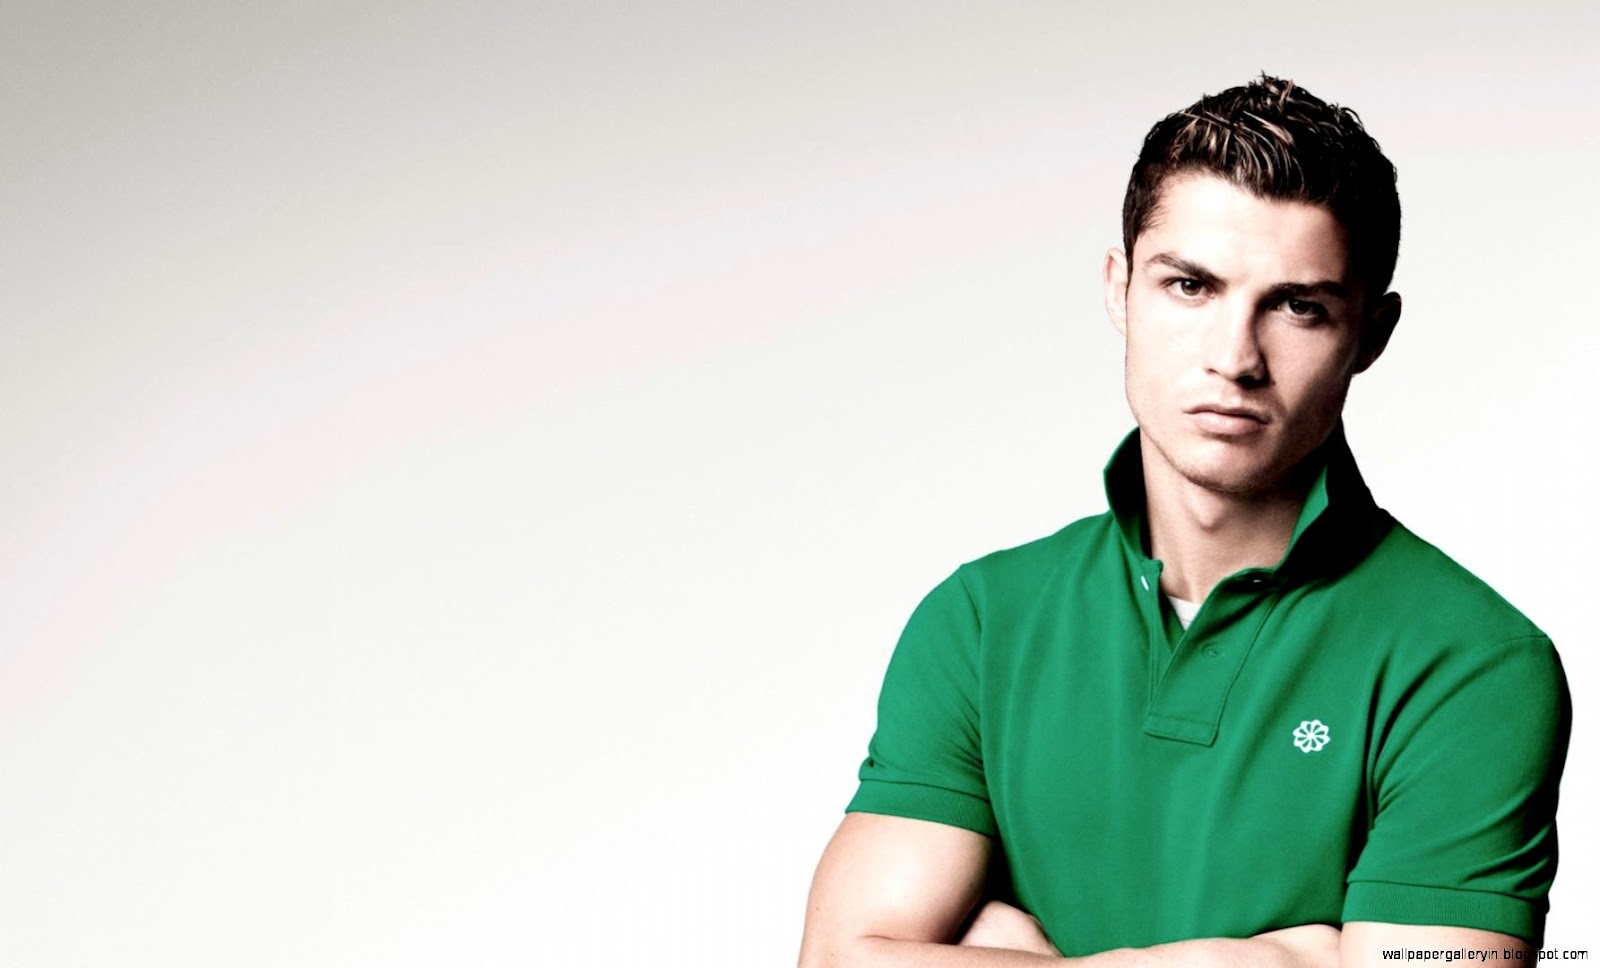 cristiano ronaldo model cr7 hd wallpaper | wallpaper gallery